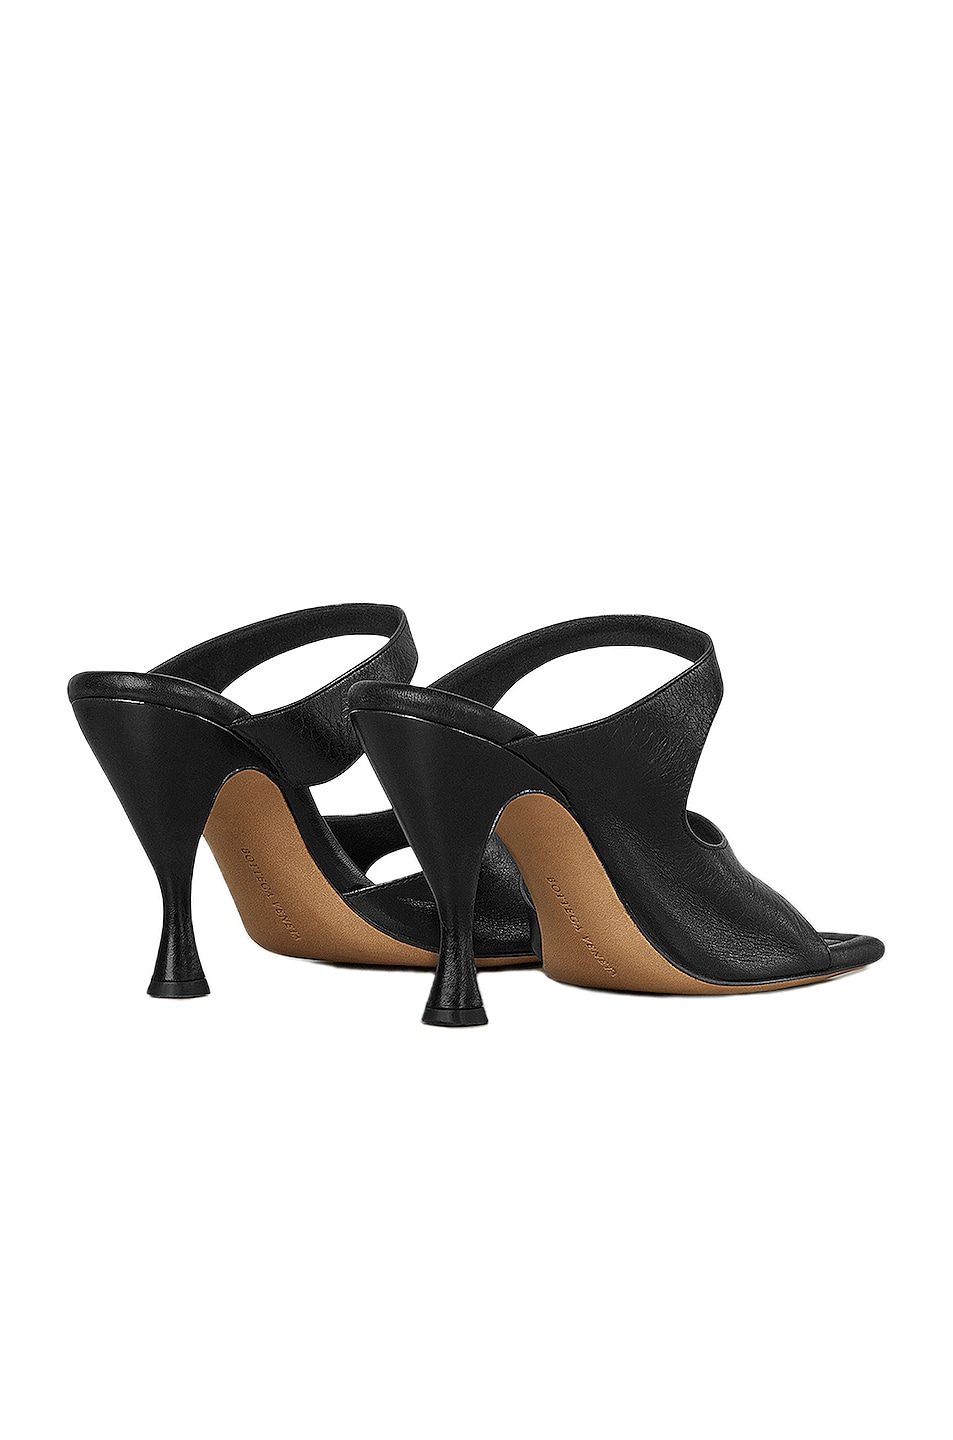 Image 3 of Bottega Veneta Leather Cutout Sandals in Black